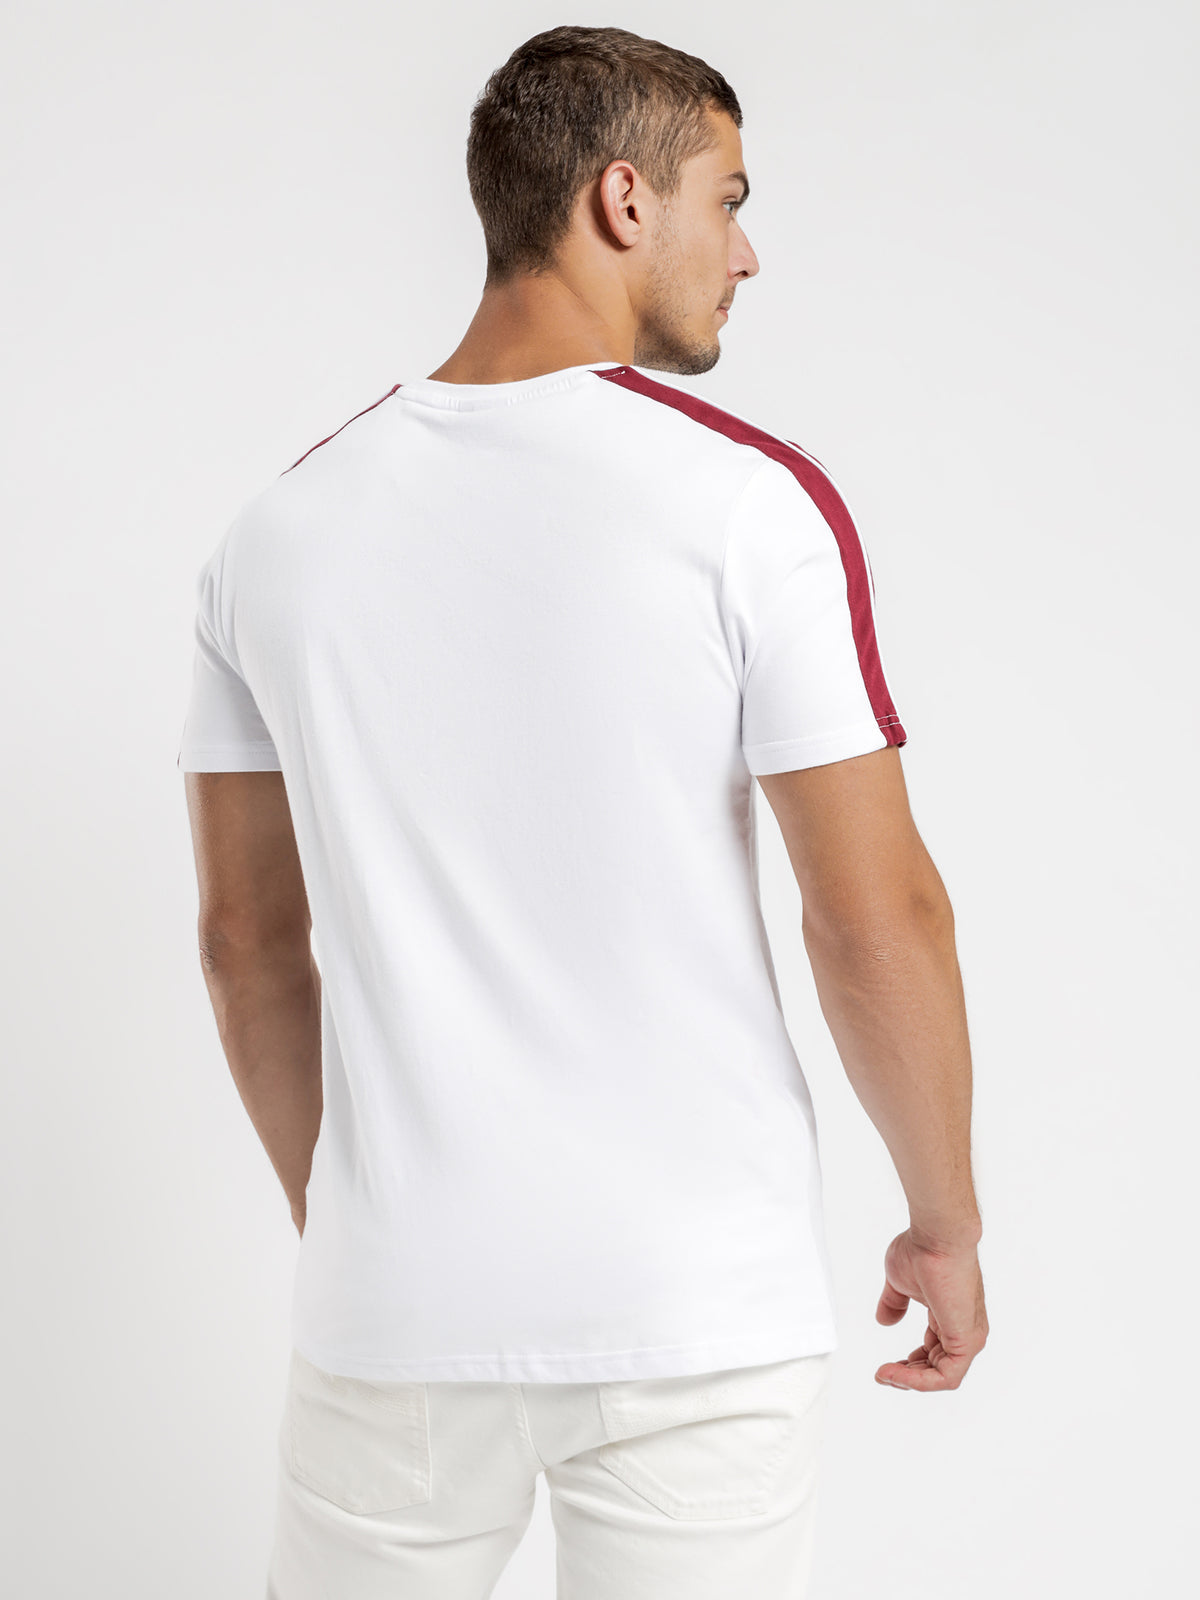 Carcano T-Shirt in White & Red